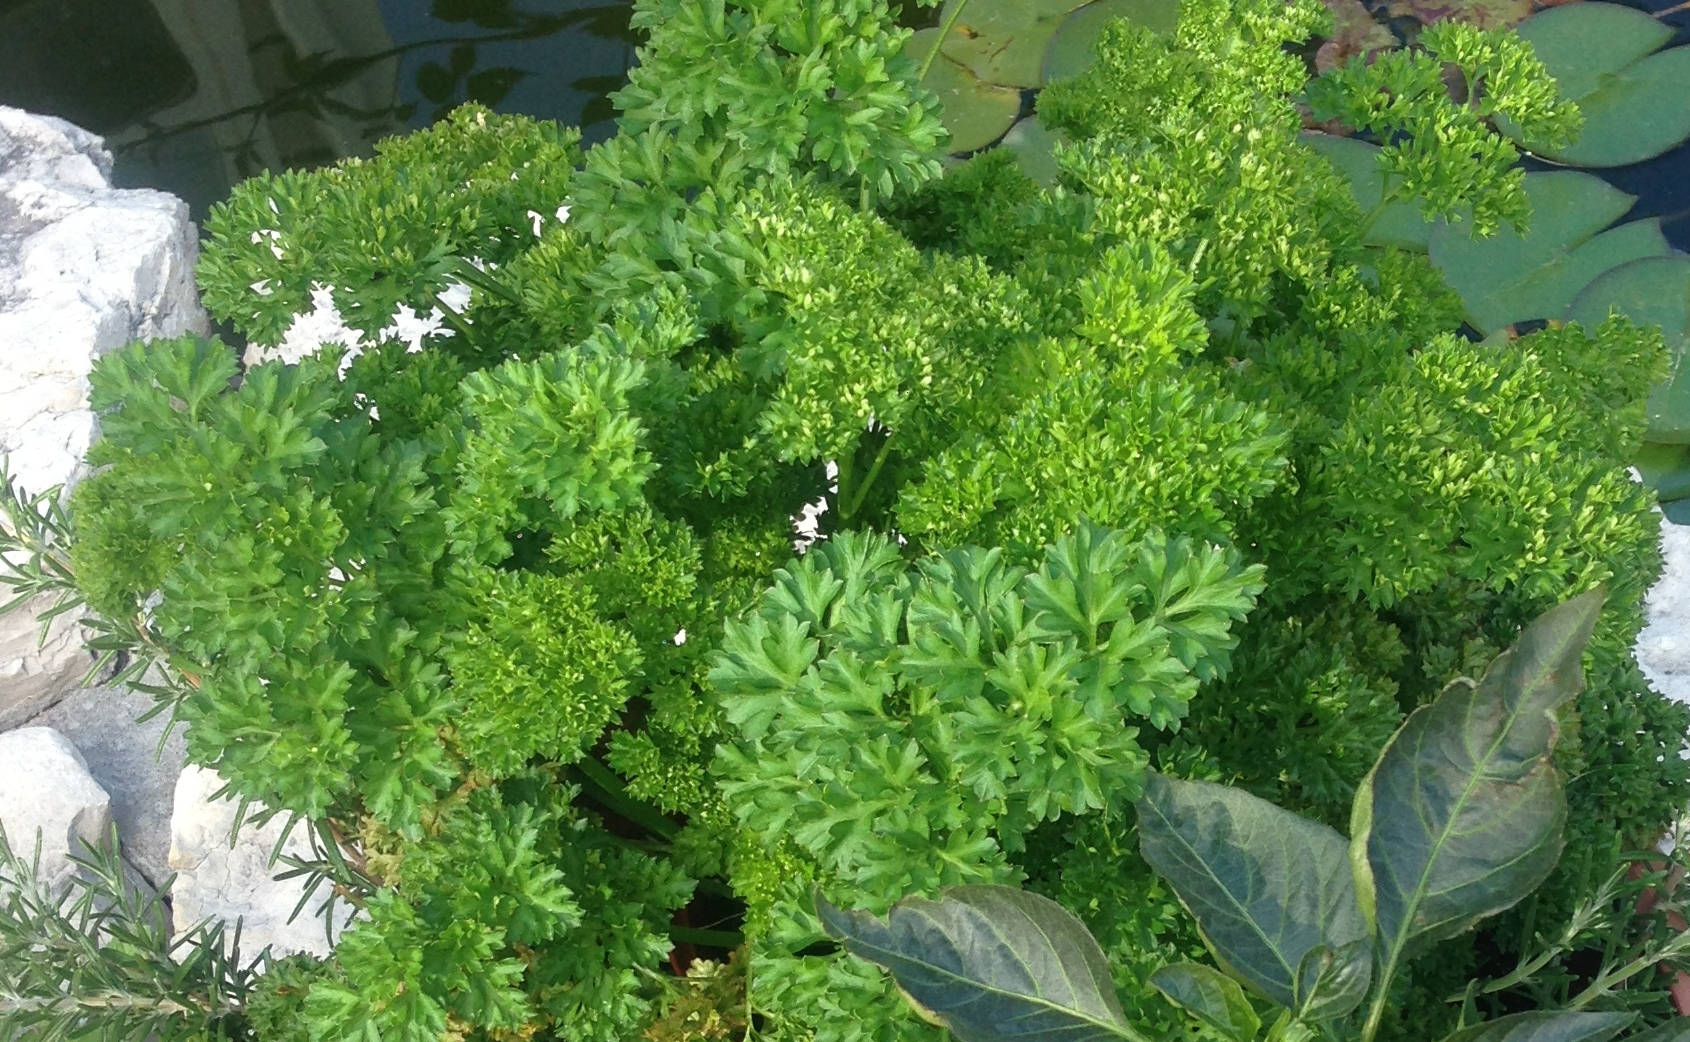 Parsley. Perfect garnish for dinner plates & tasty too.